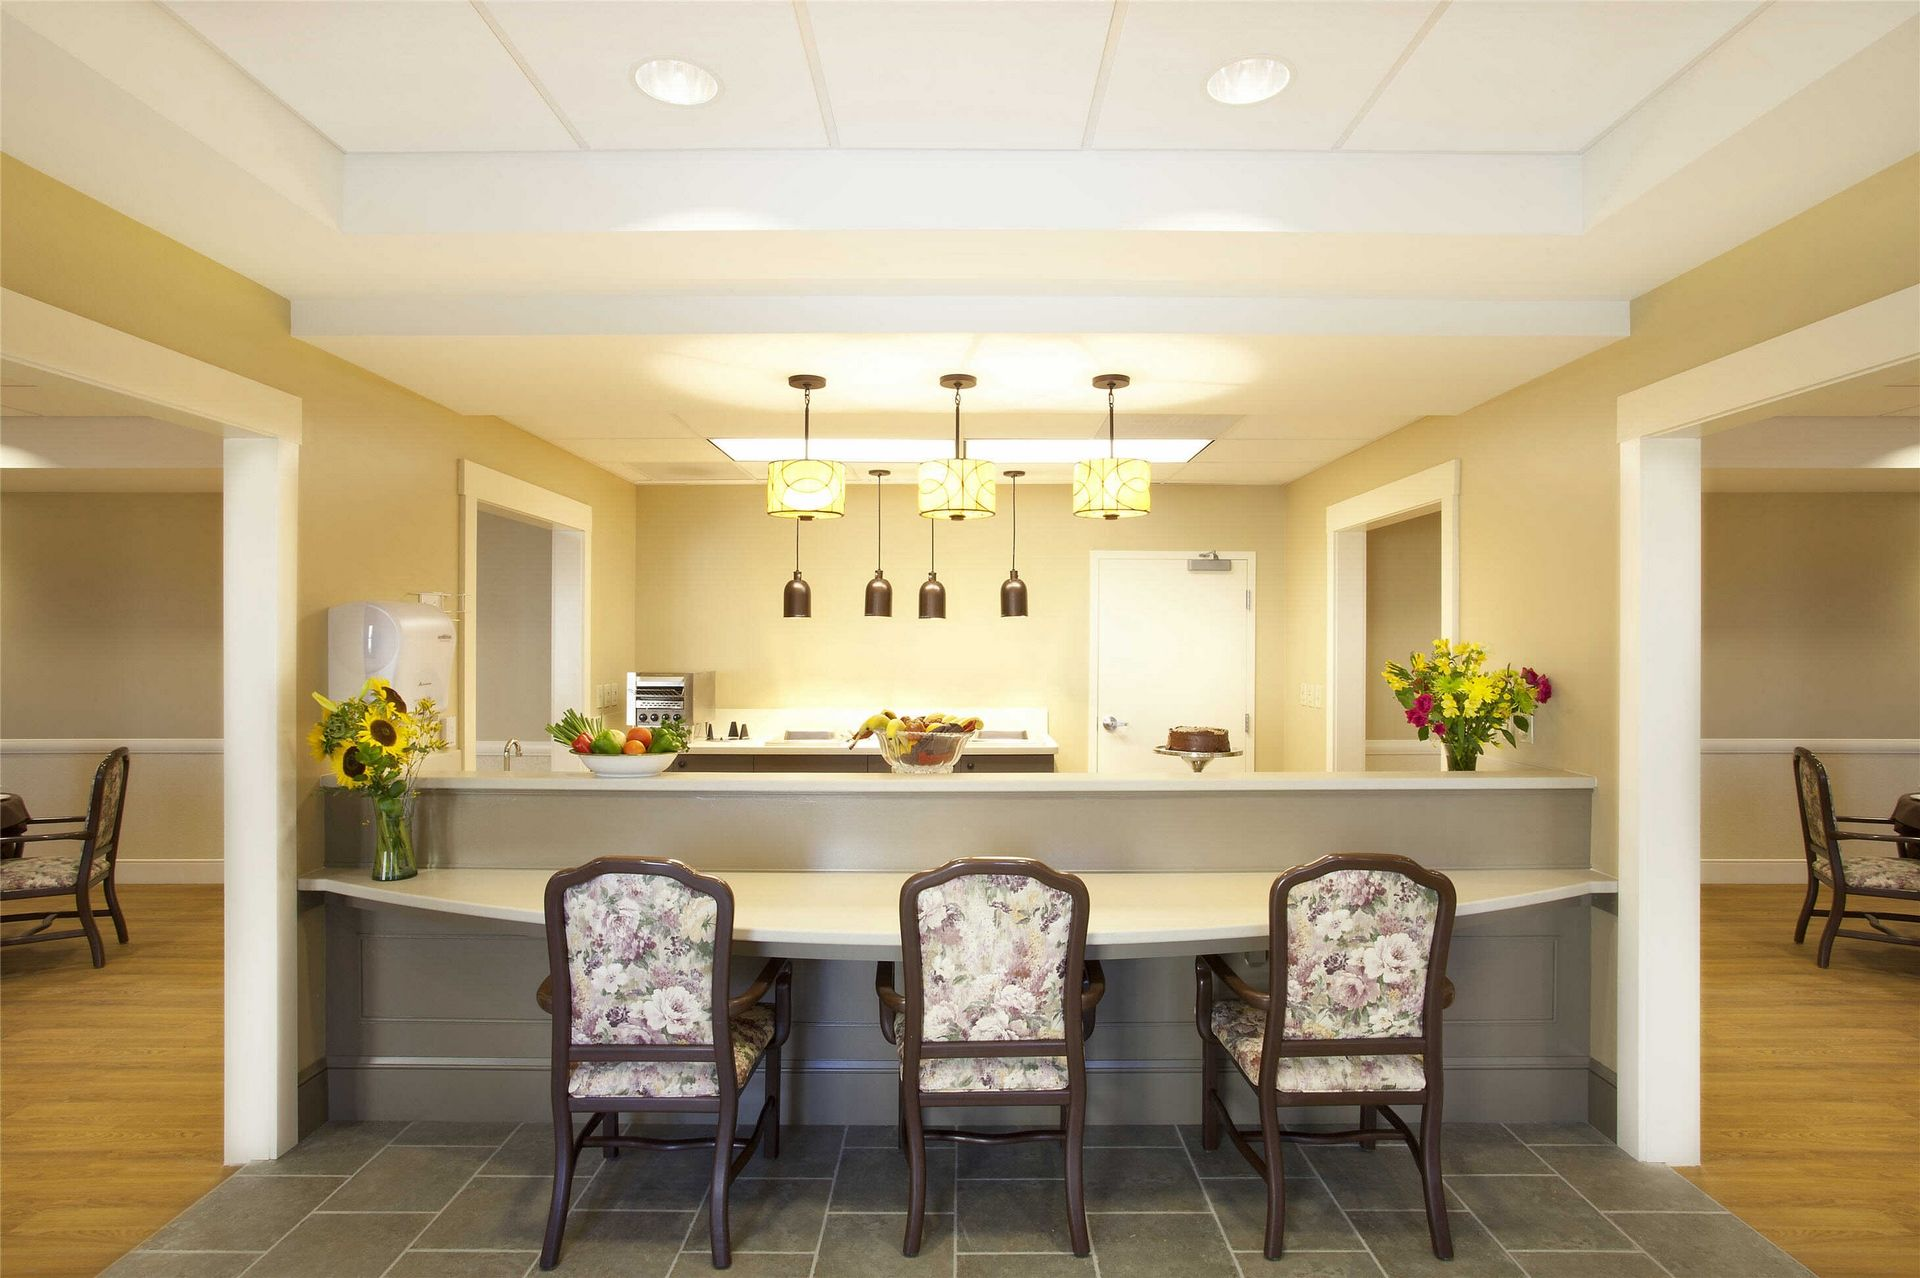 Kahl Home Skilled Nursing Design Cafe